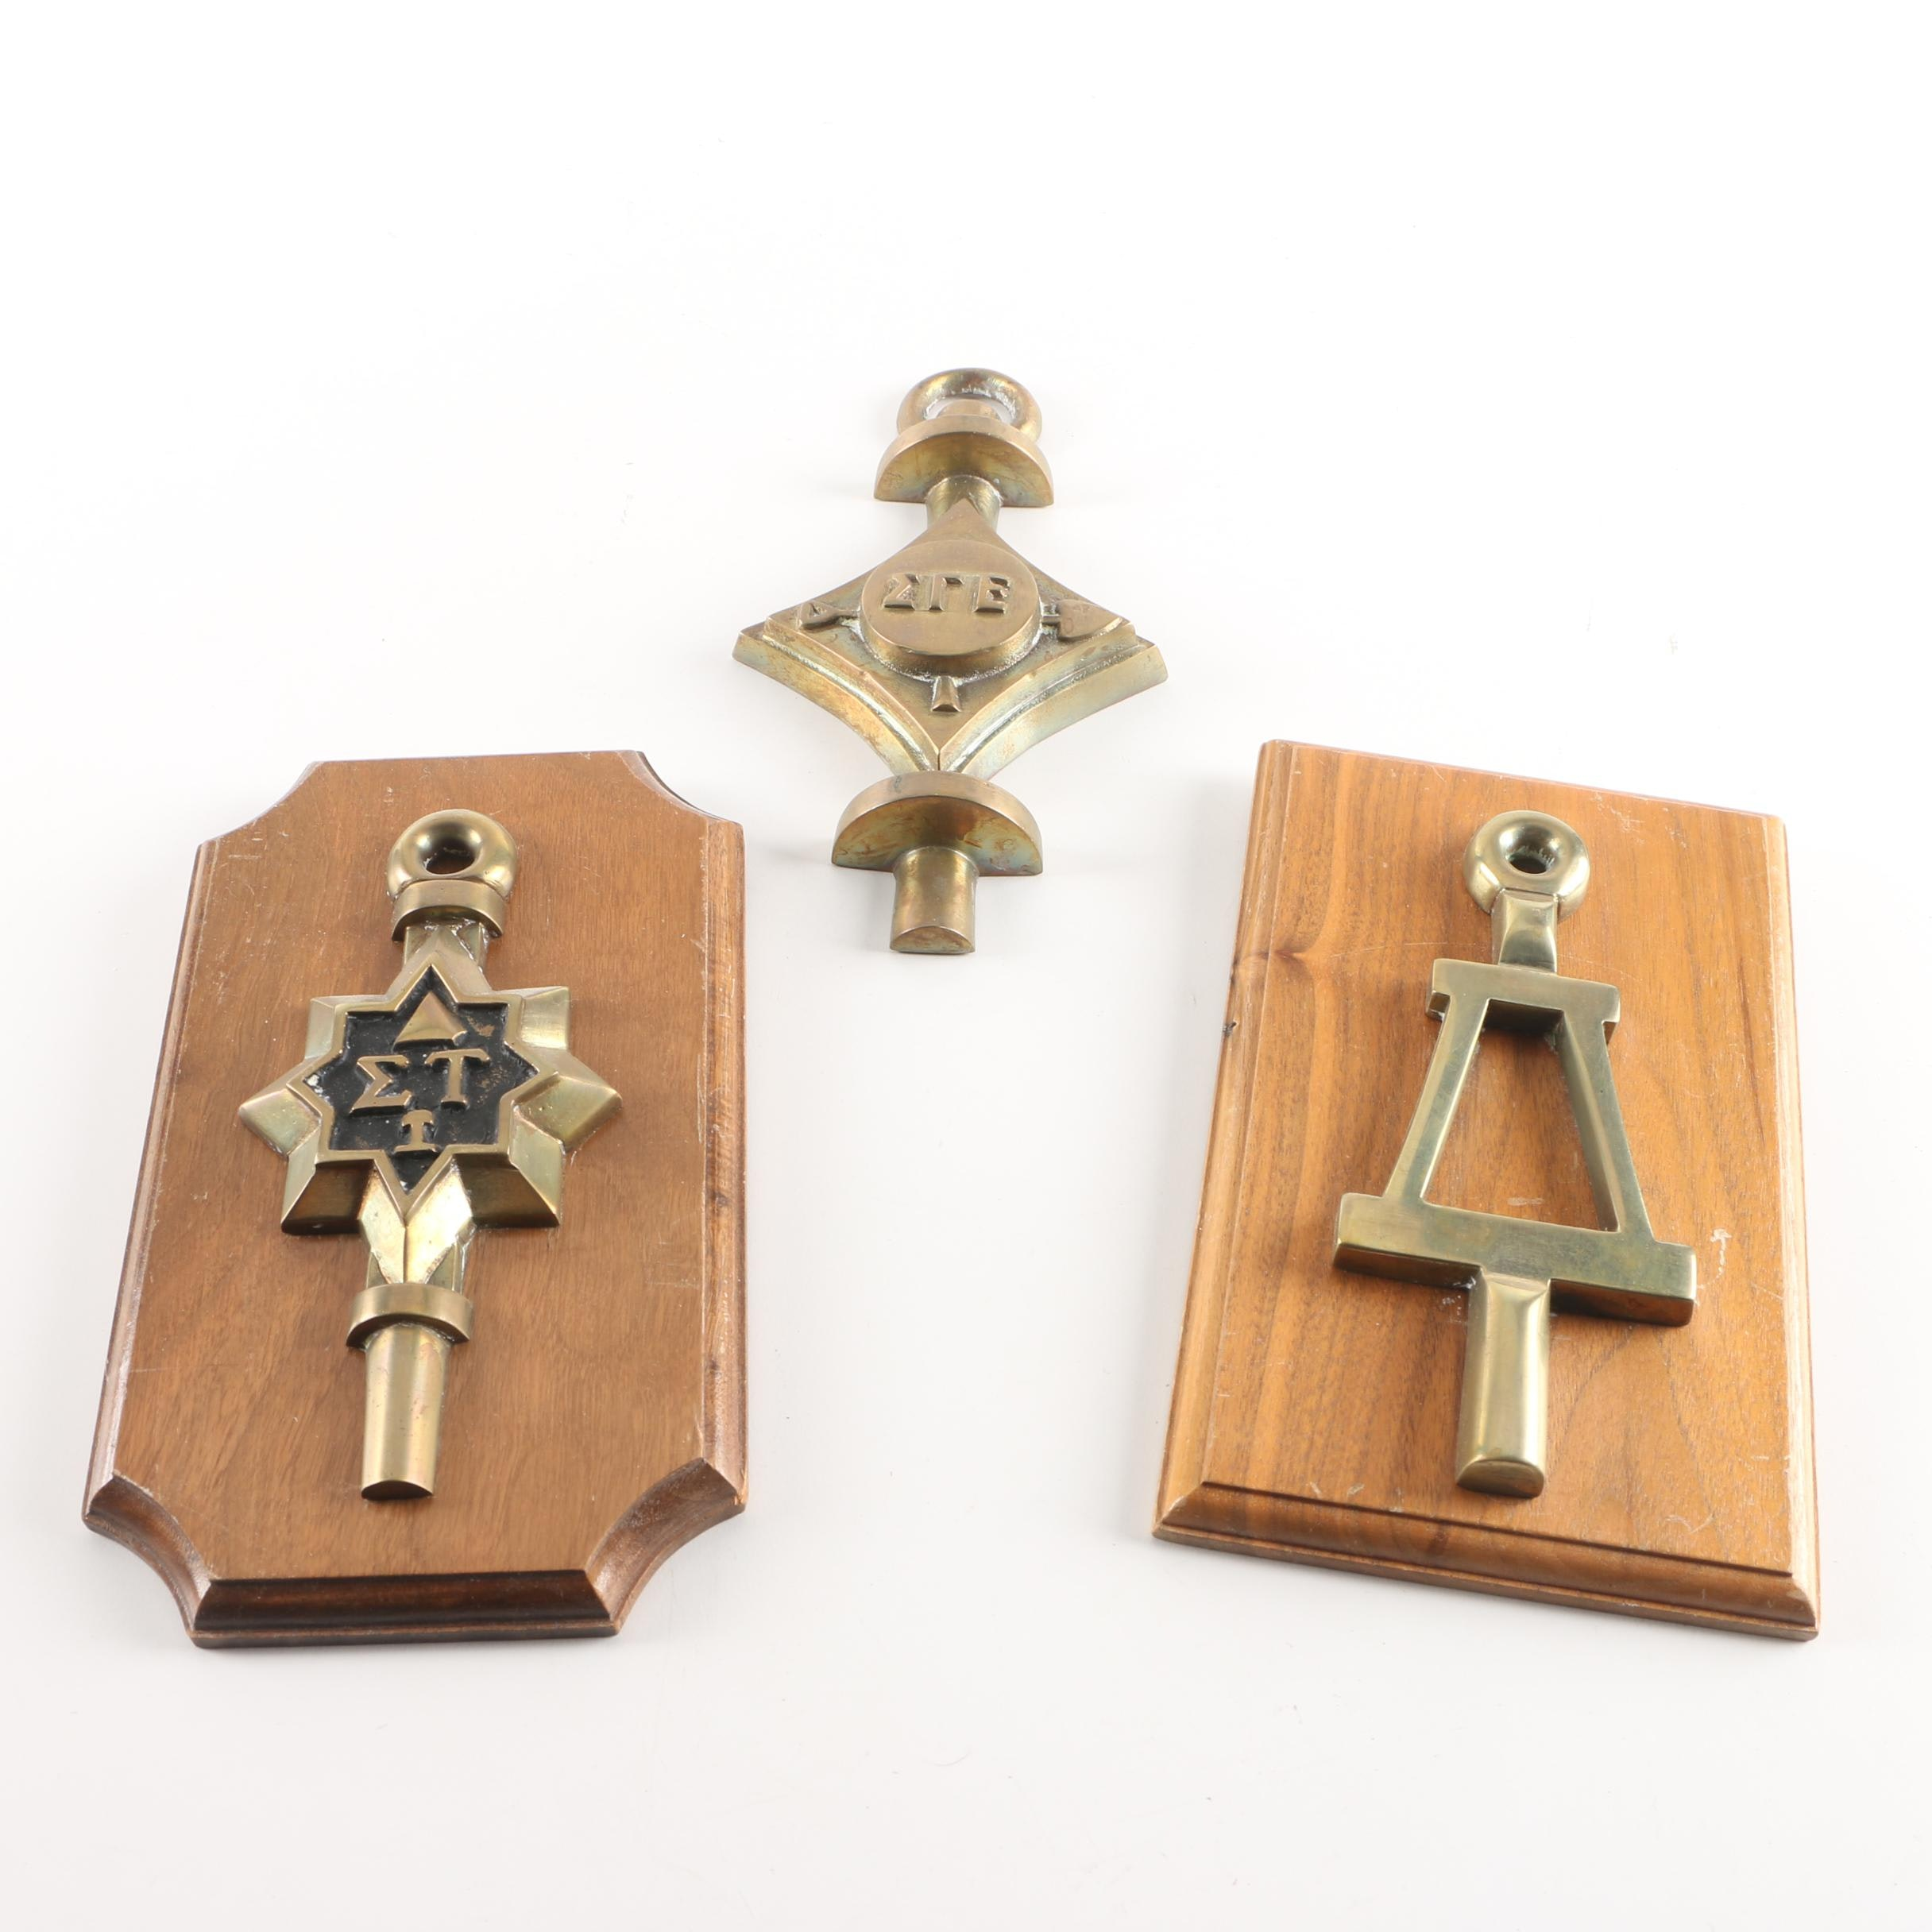 Brass Collegiate Fraternity and Honor Society Wall Hangings